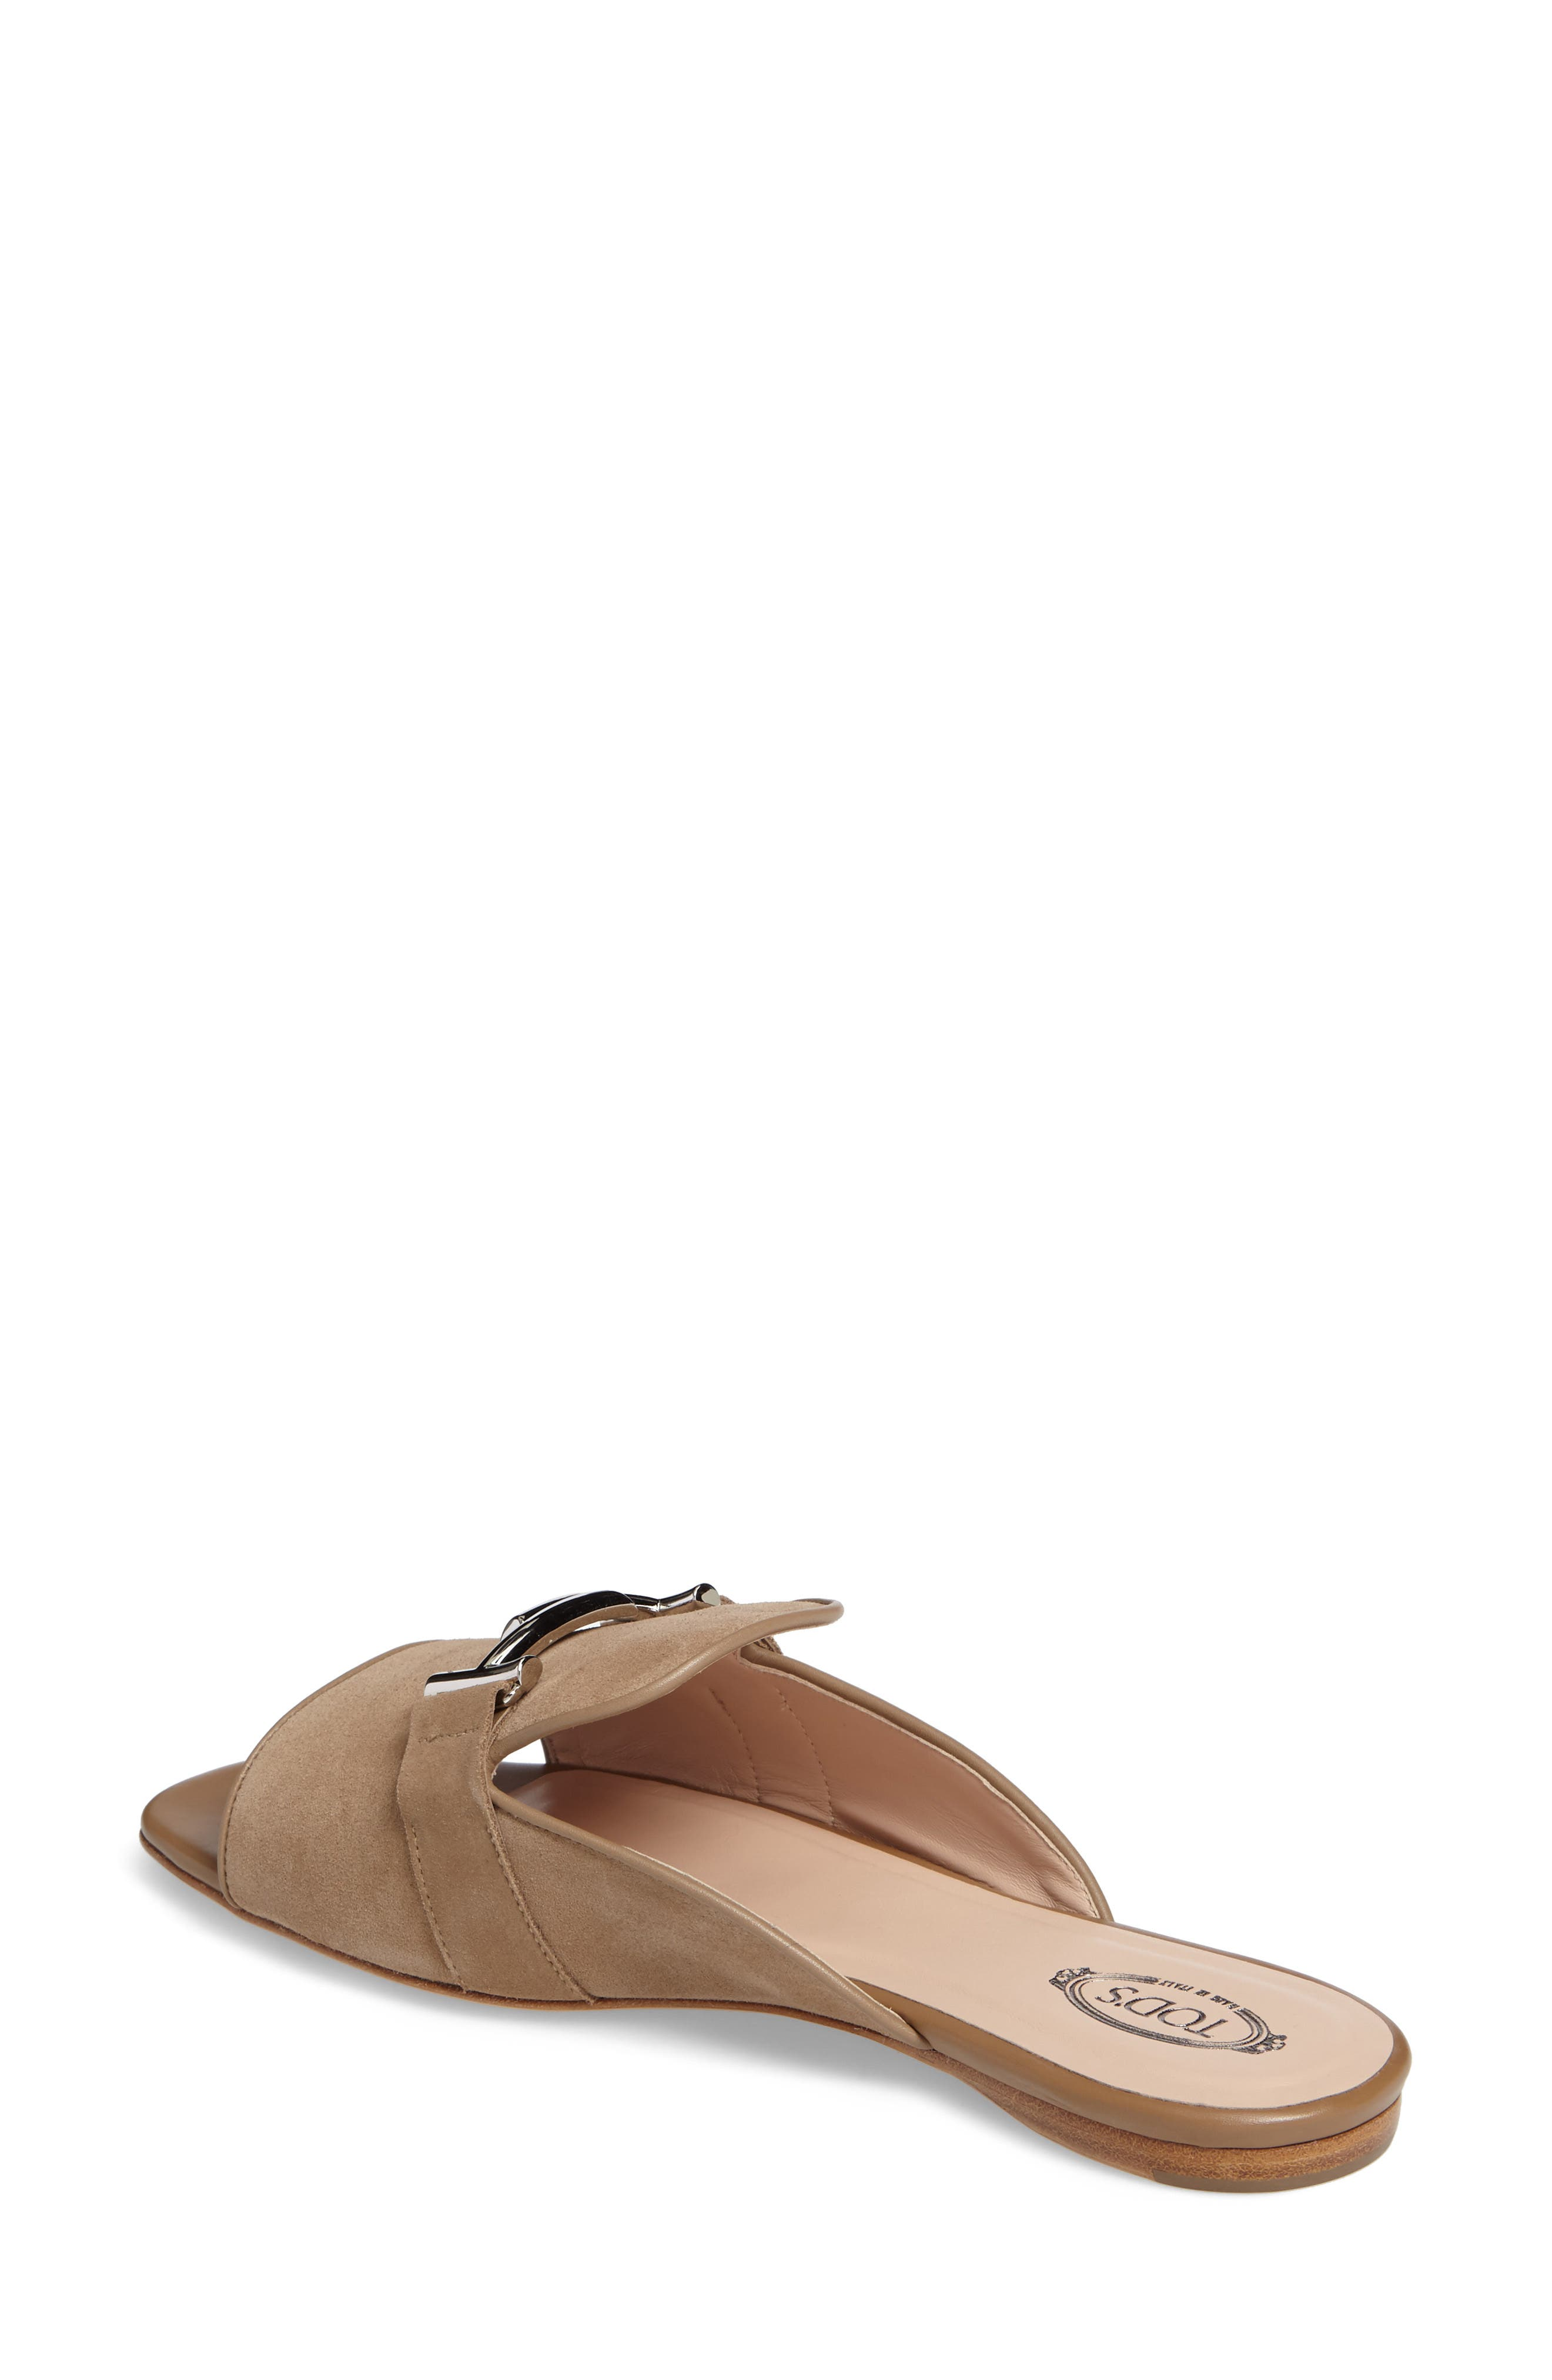 Double T Open Toe Loafer Mule,                             Alternate thumbnail 2, color,                             200